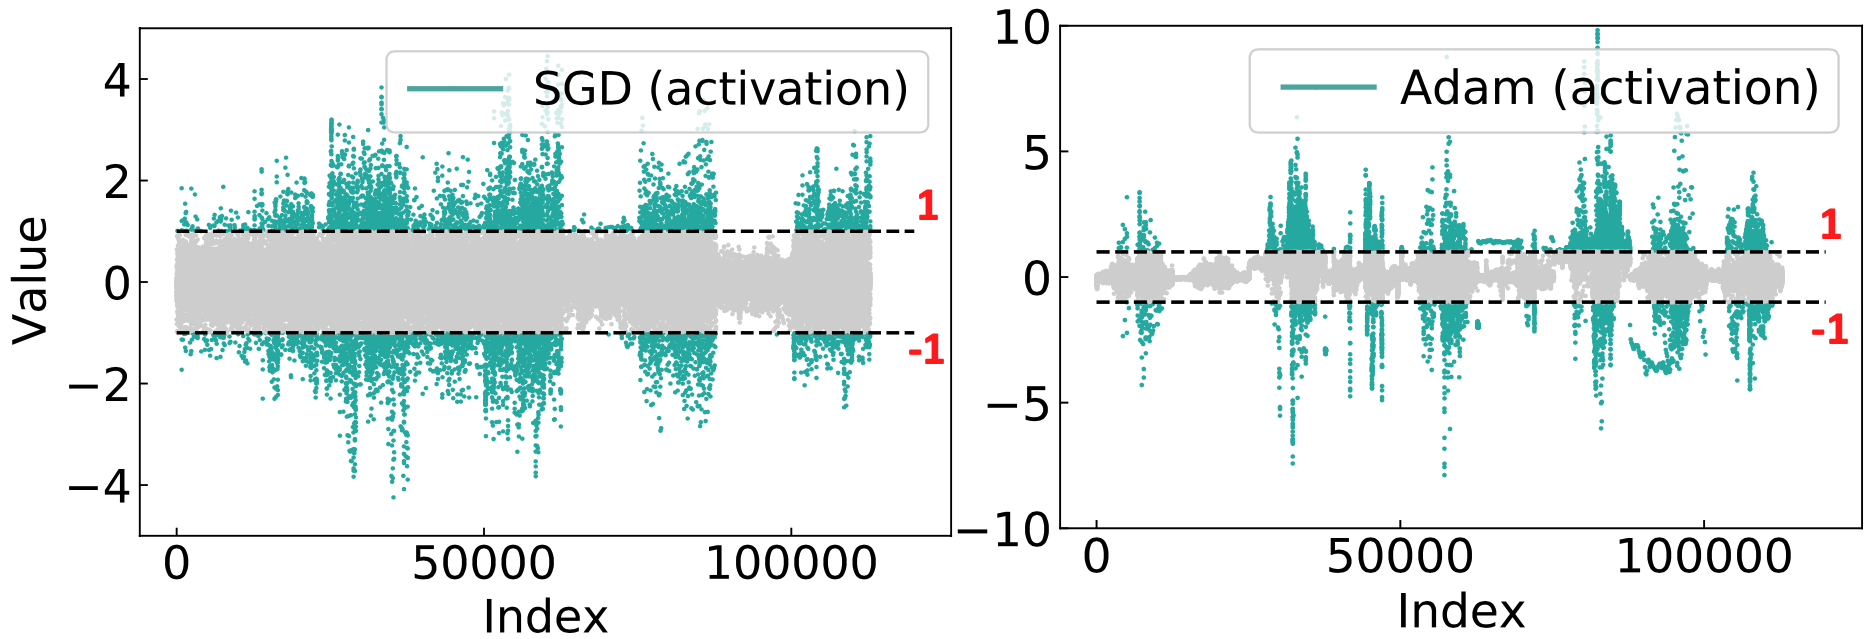 Illustration of activation distributions from different optimizers (Left: SGD; Right: Adam). Dotted lines are the up (+1) and low (-1) bounds. We observe that Adam can alleviate activation saturation significantly during training.